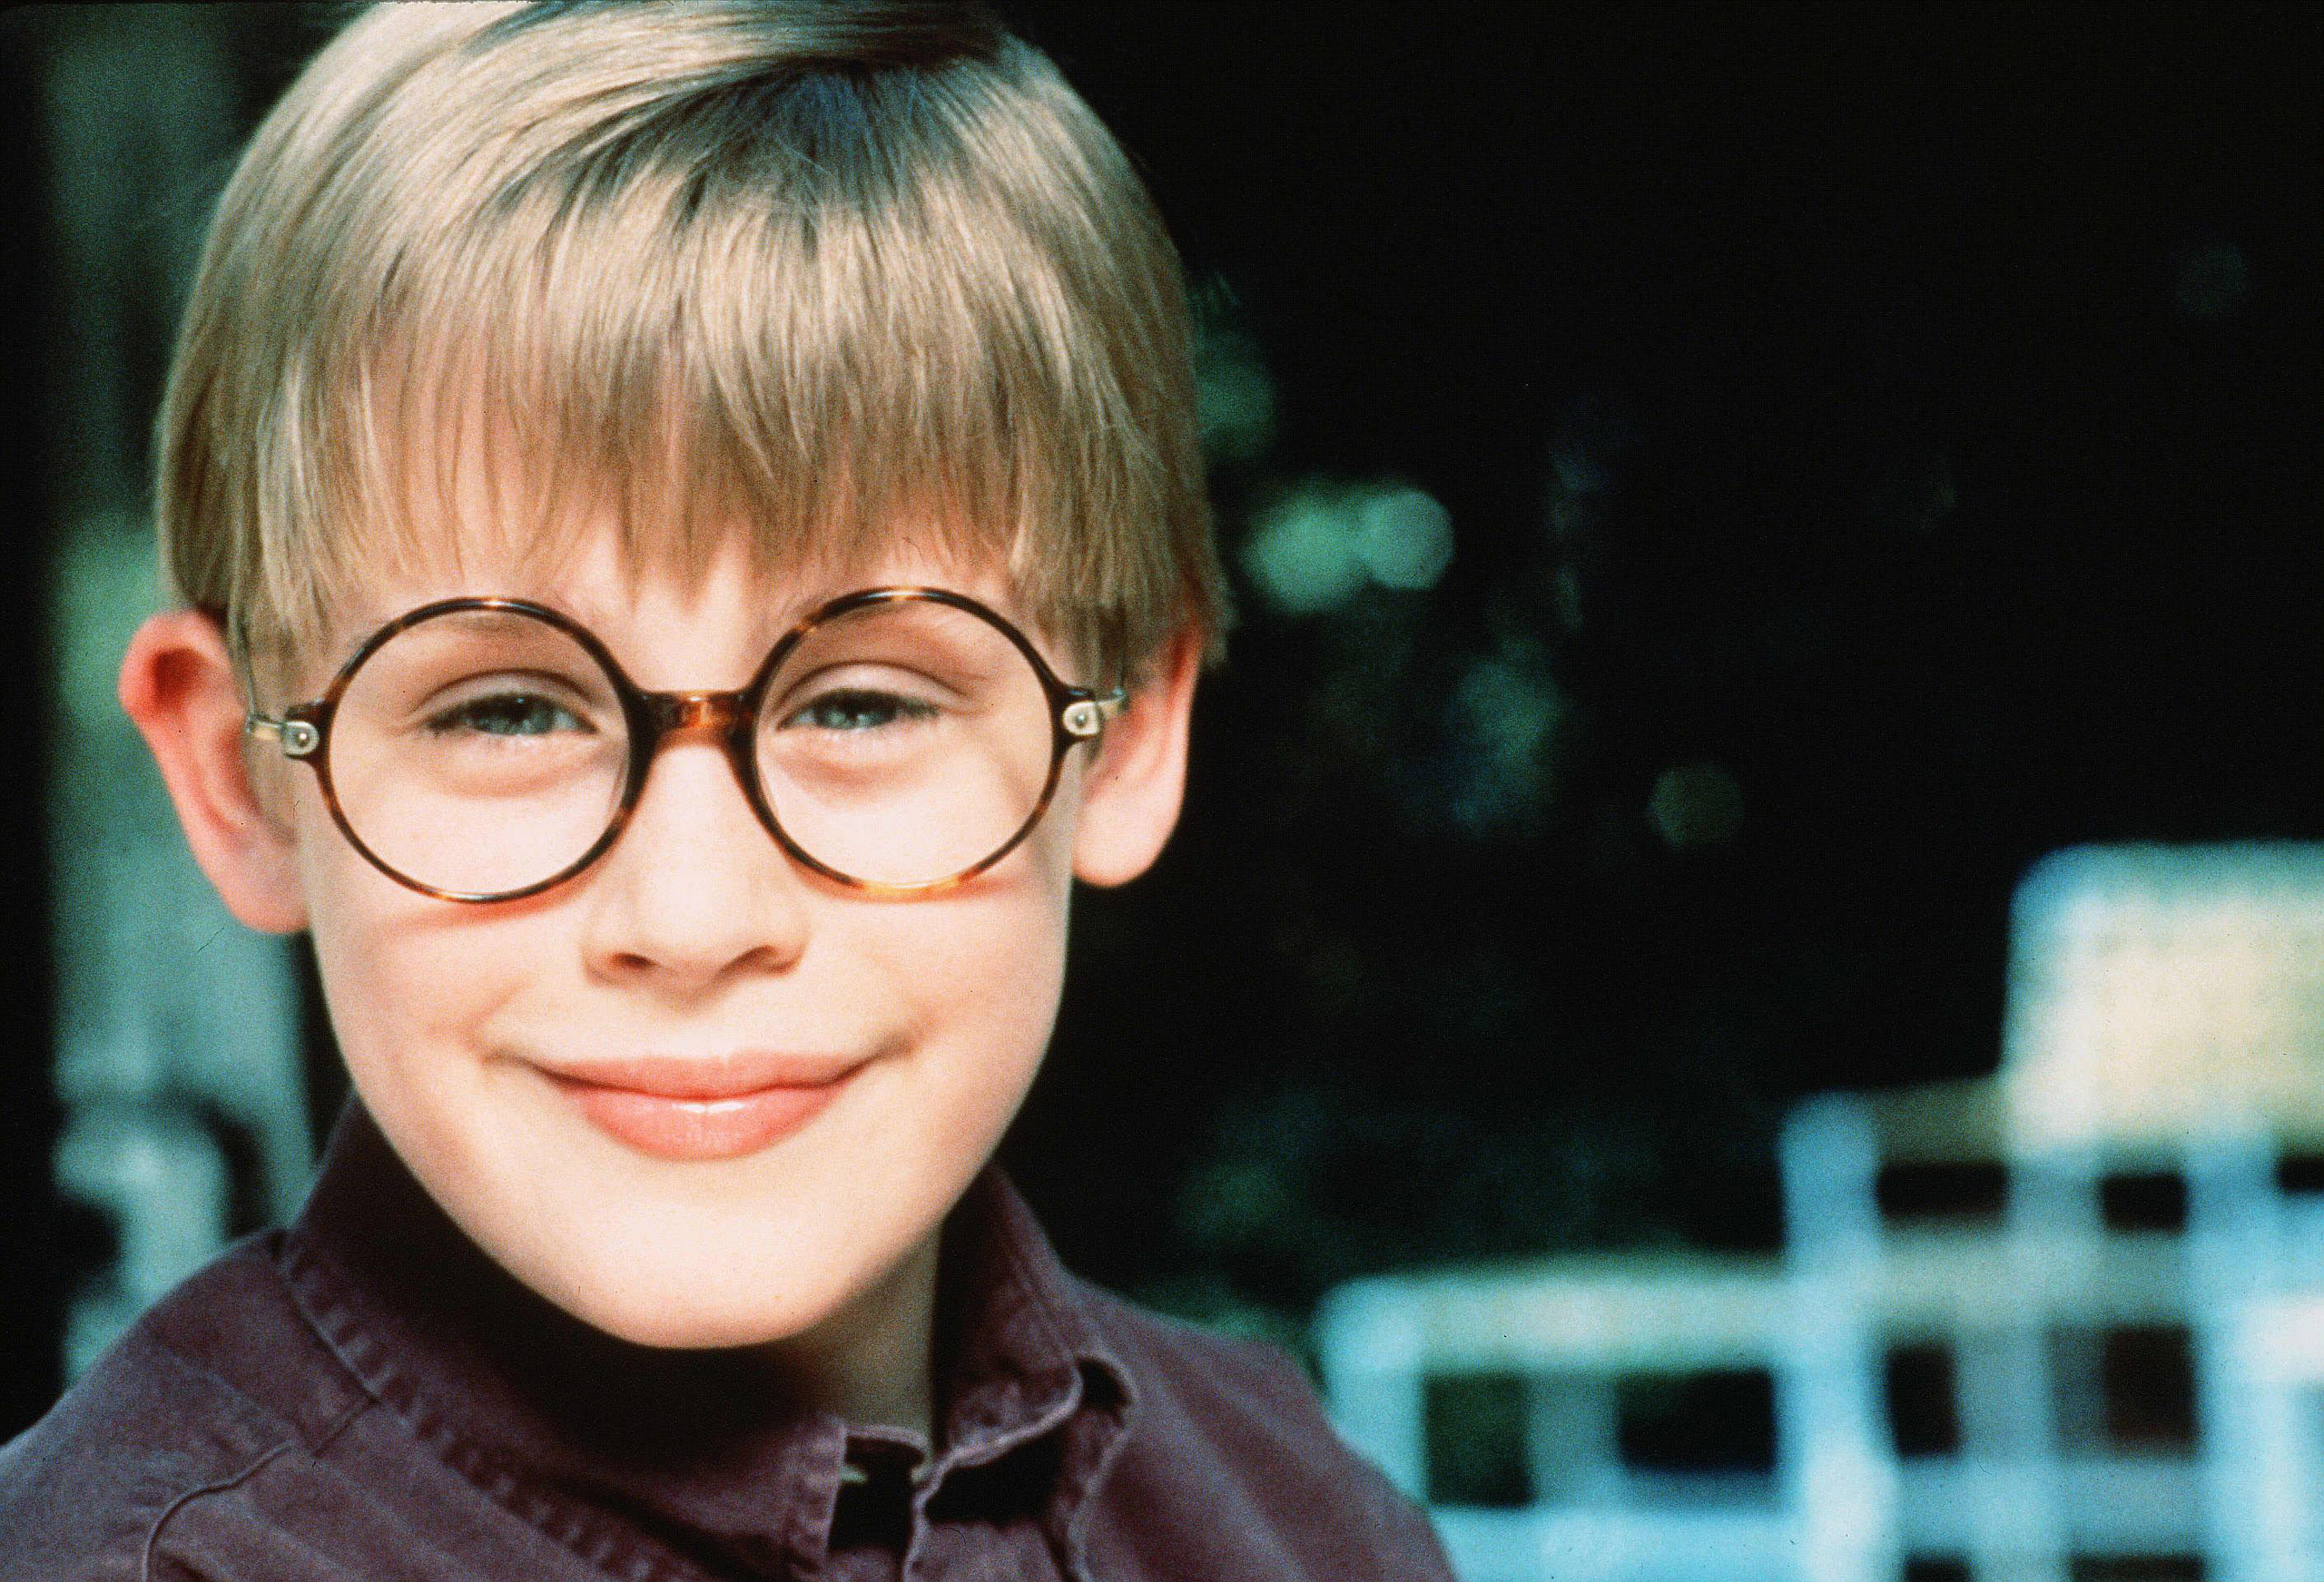 Macaulay Culkin - Stars childhood pictures Photo (3278346) - Fanpop